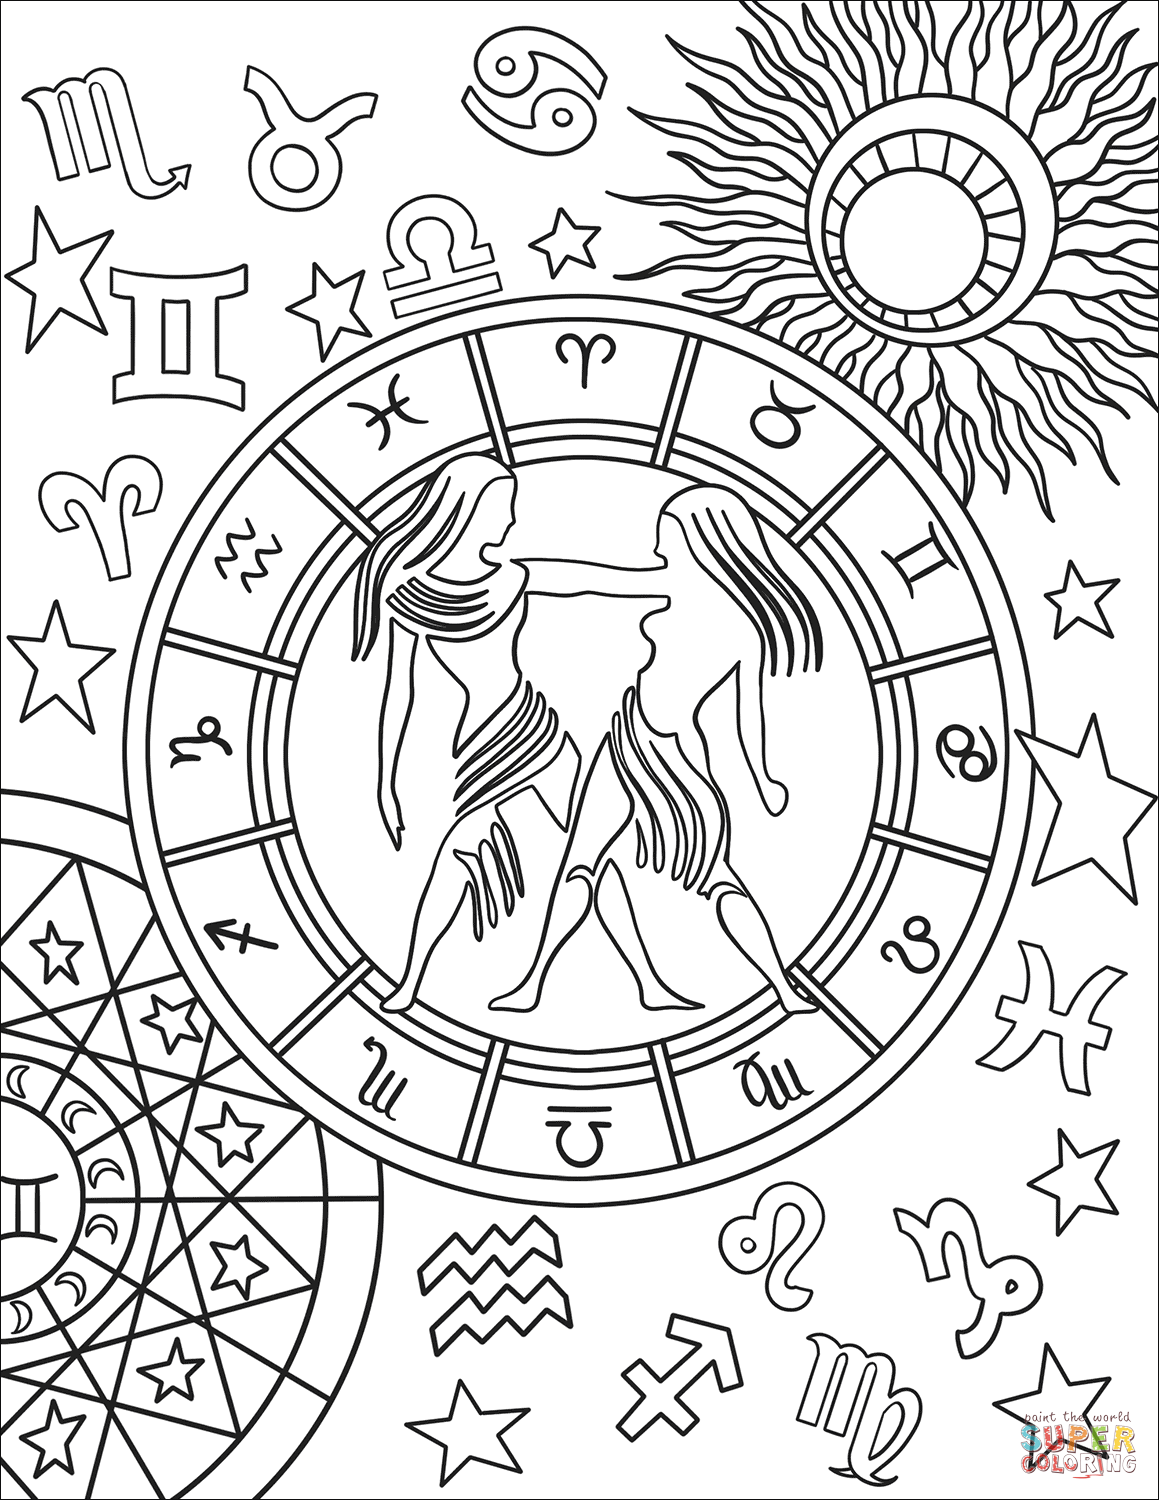 printable zodiac coloring pages sagittarius zodiac beauty colouring page adult coloring zodiac pages printable coloring